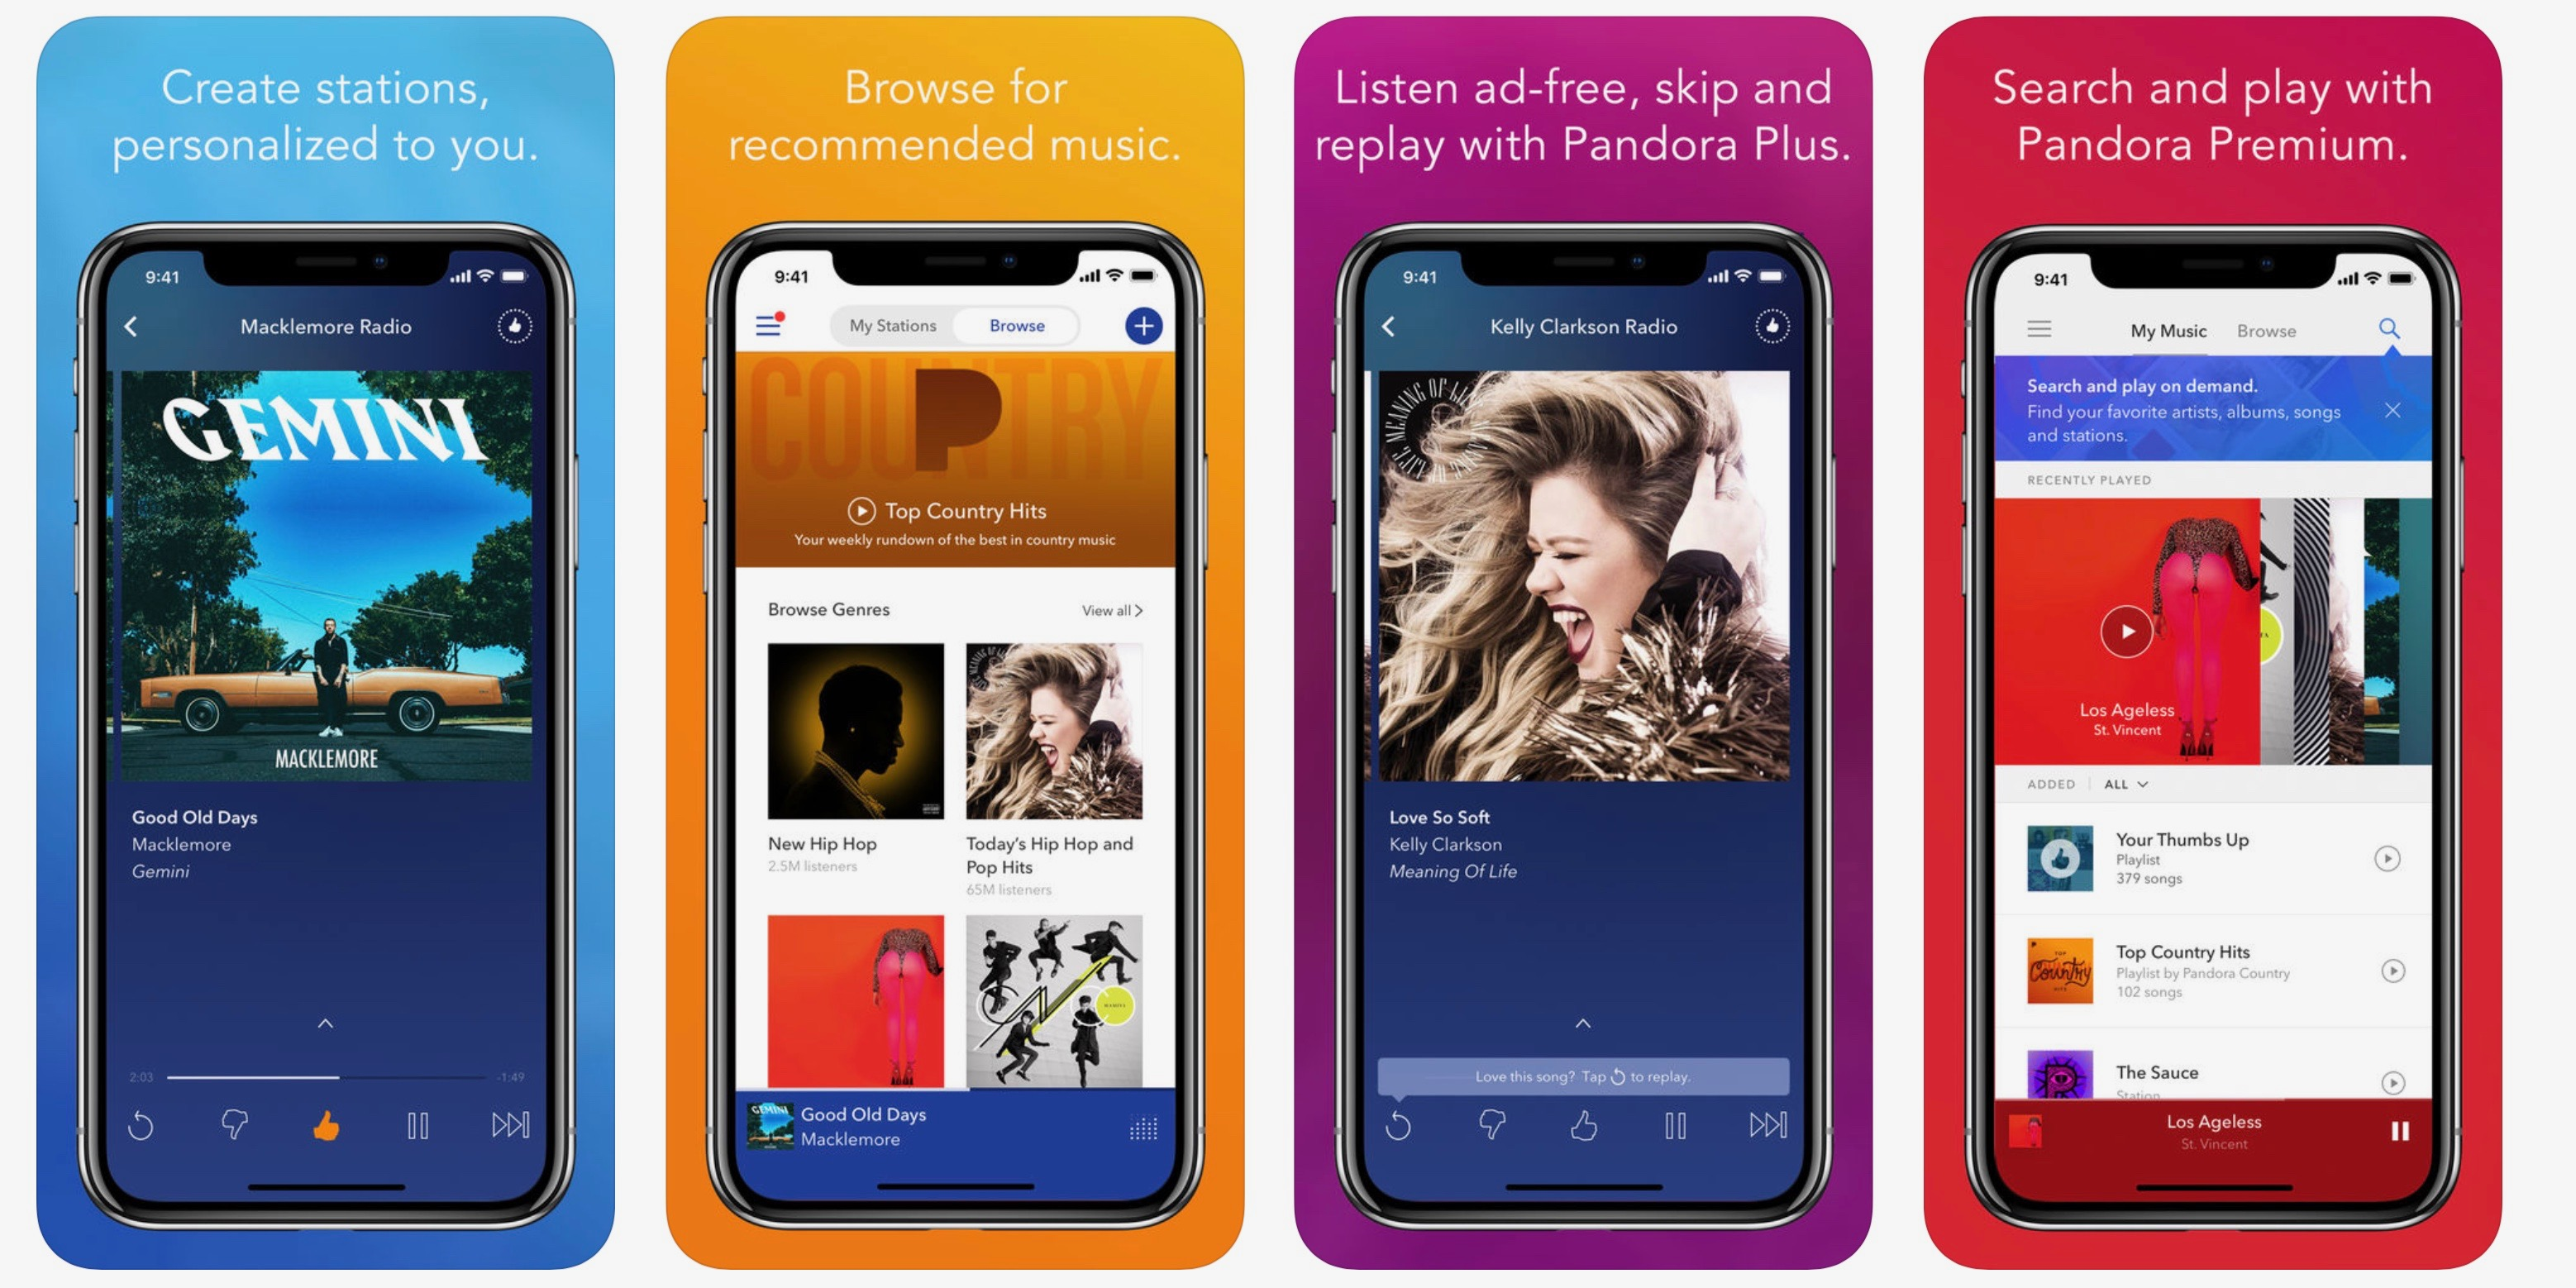 Pandora adds Siri Shortcuts support ahead of iOS 12, teases new Apple Watch app